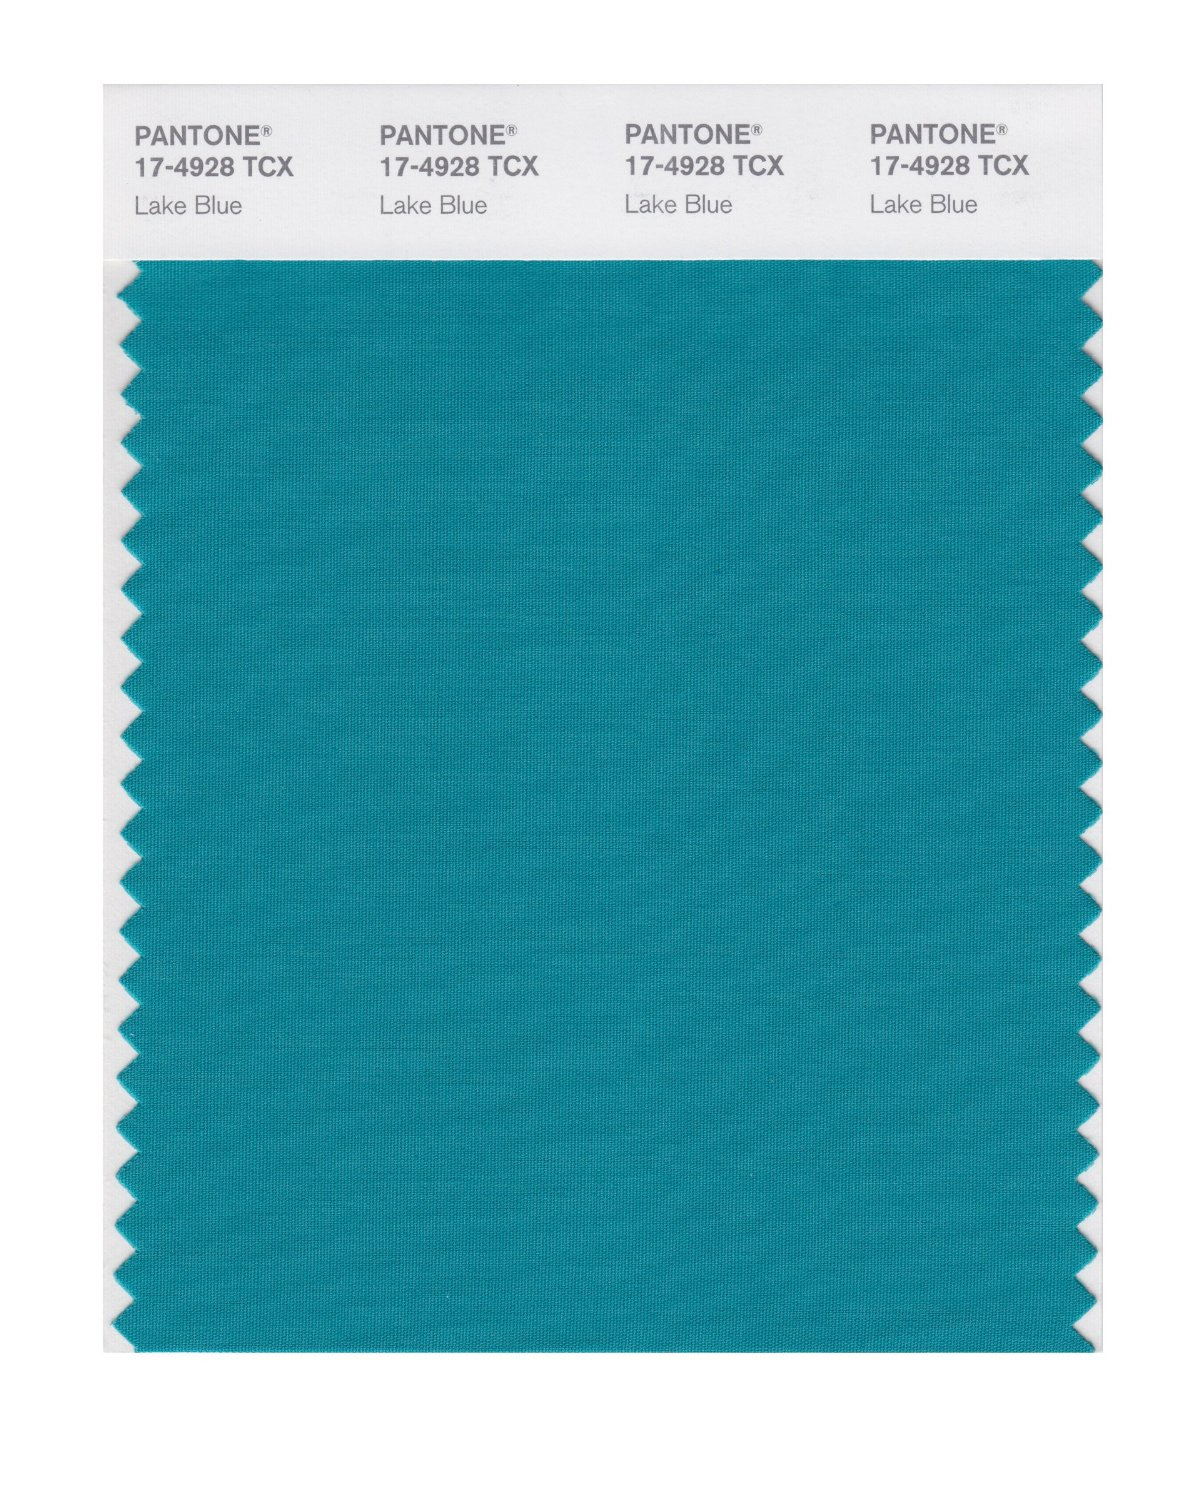 Pantone Smart Swatch 17-4928 Lake Blue